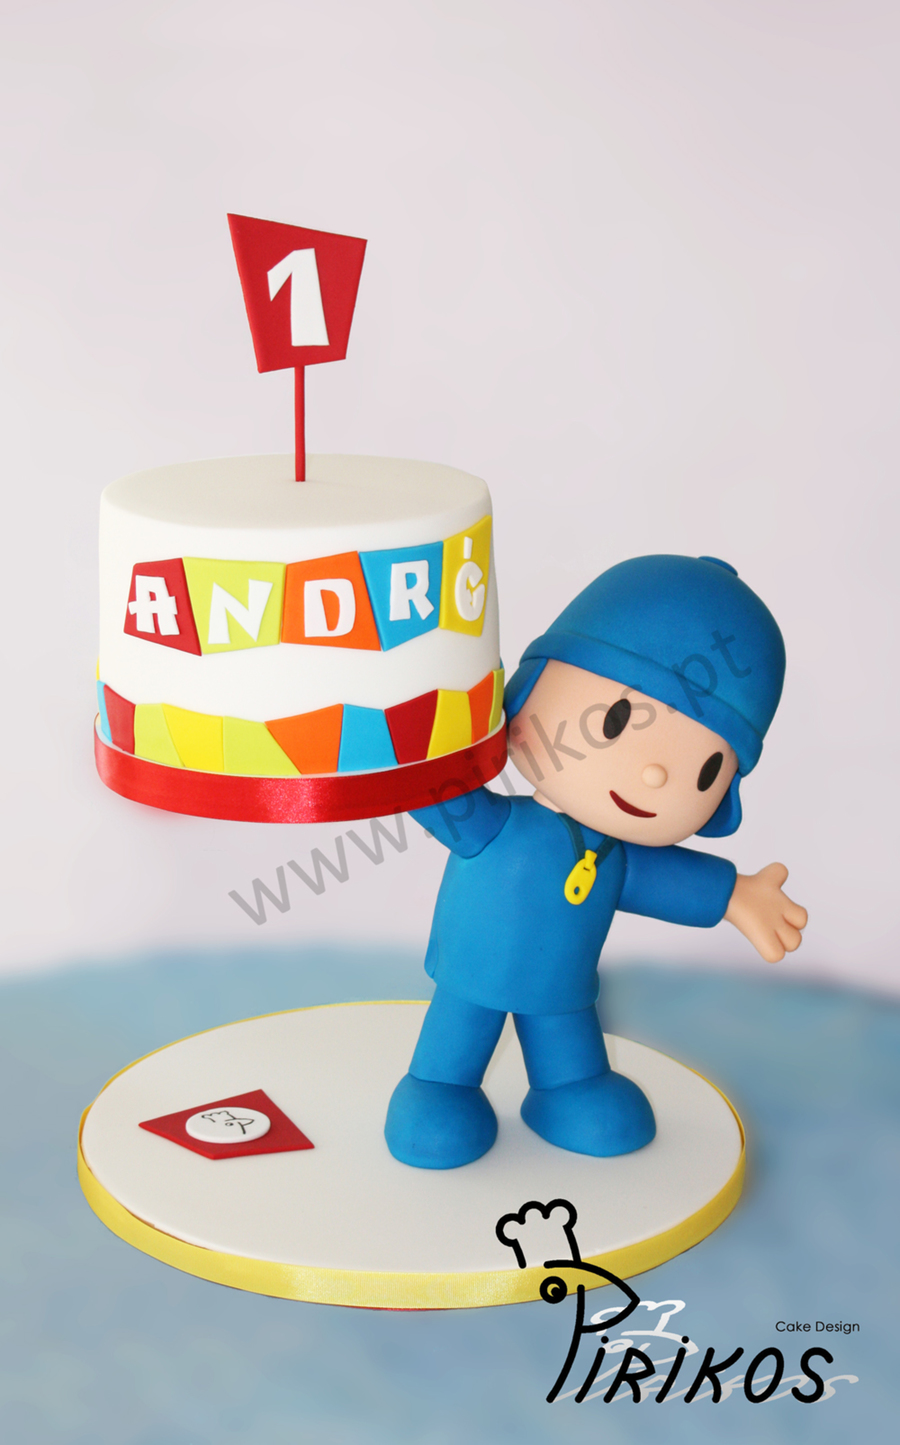 Pocoyo Delivers A Cake Cupcakes Push Up Cakes And